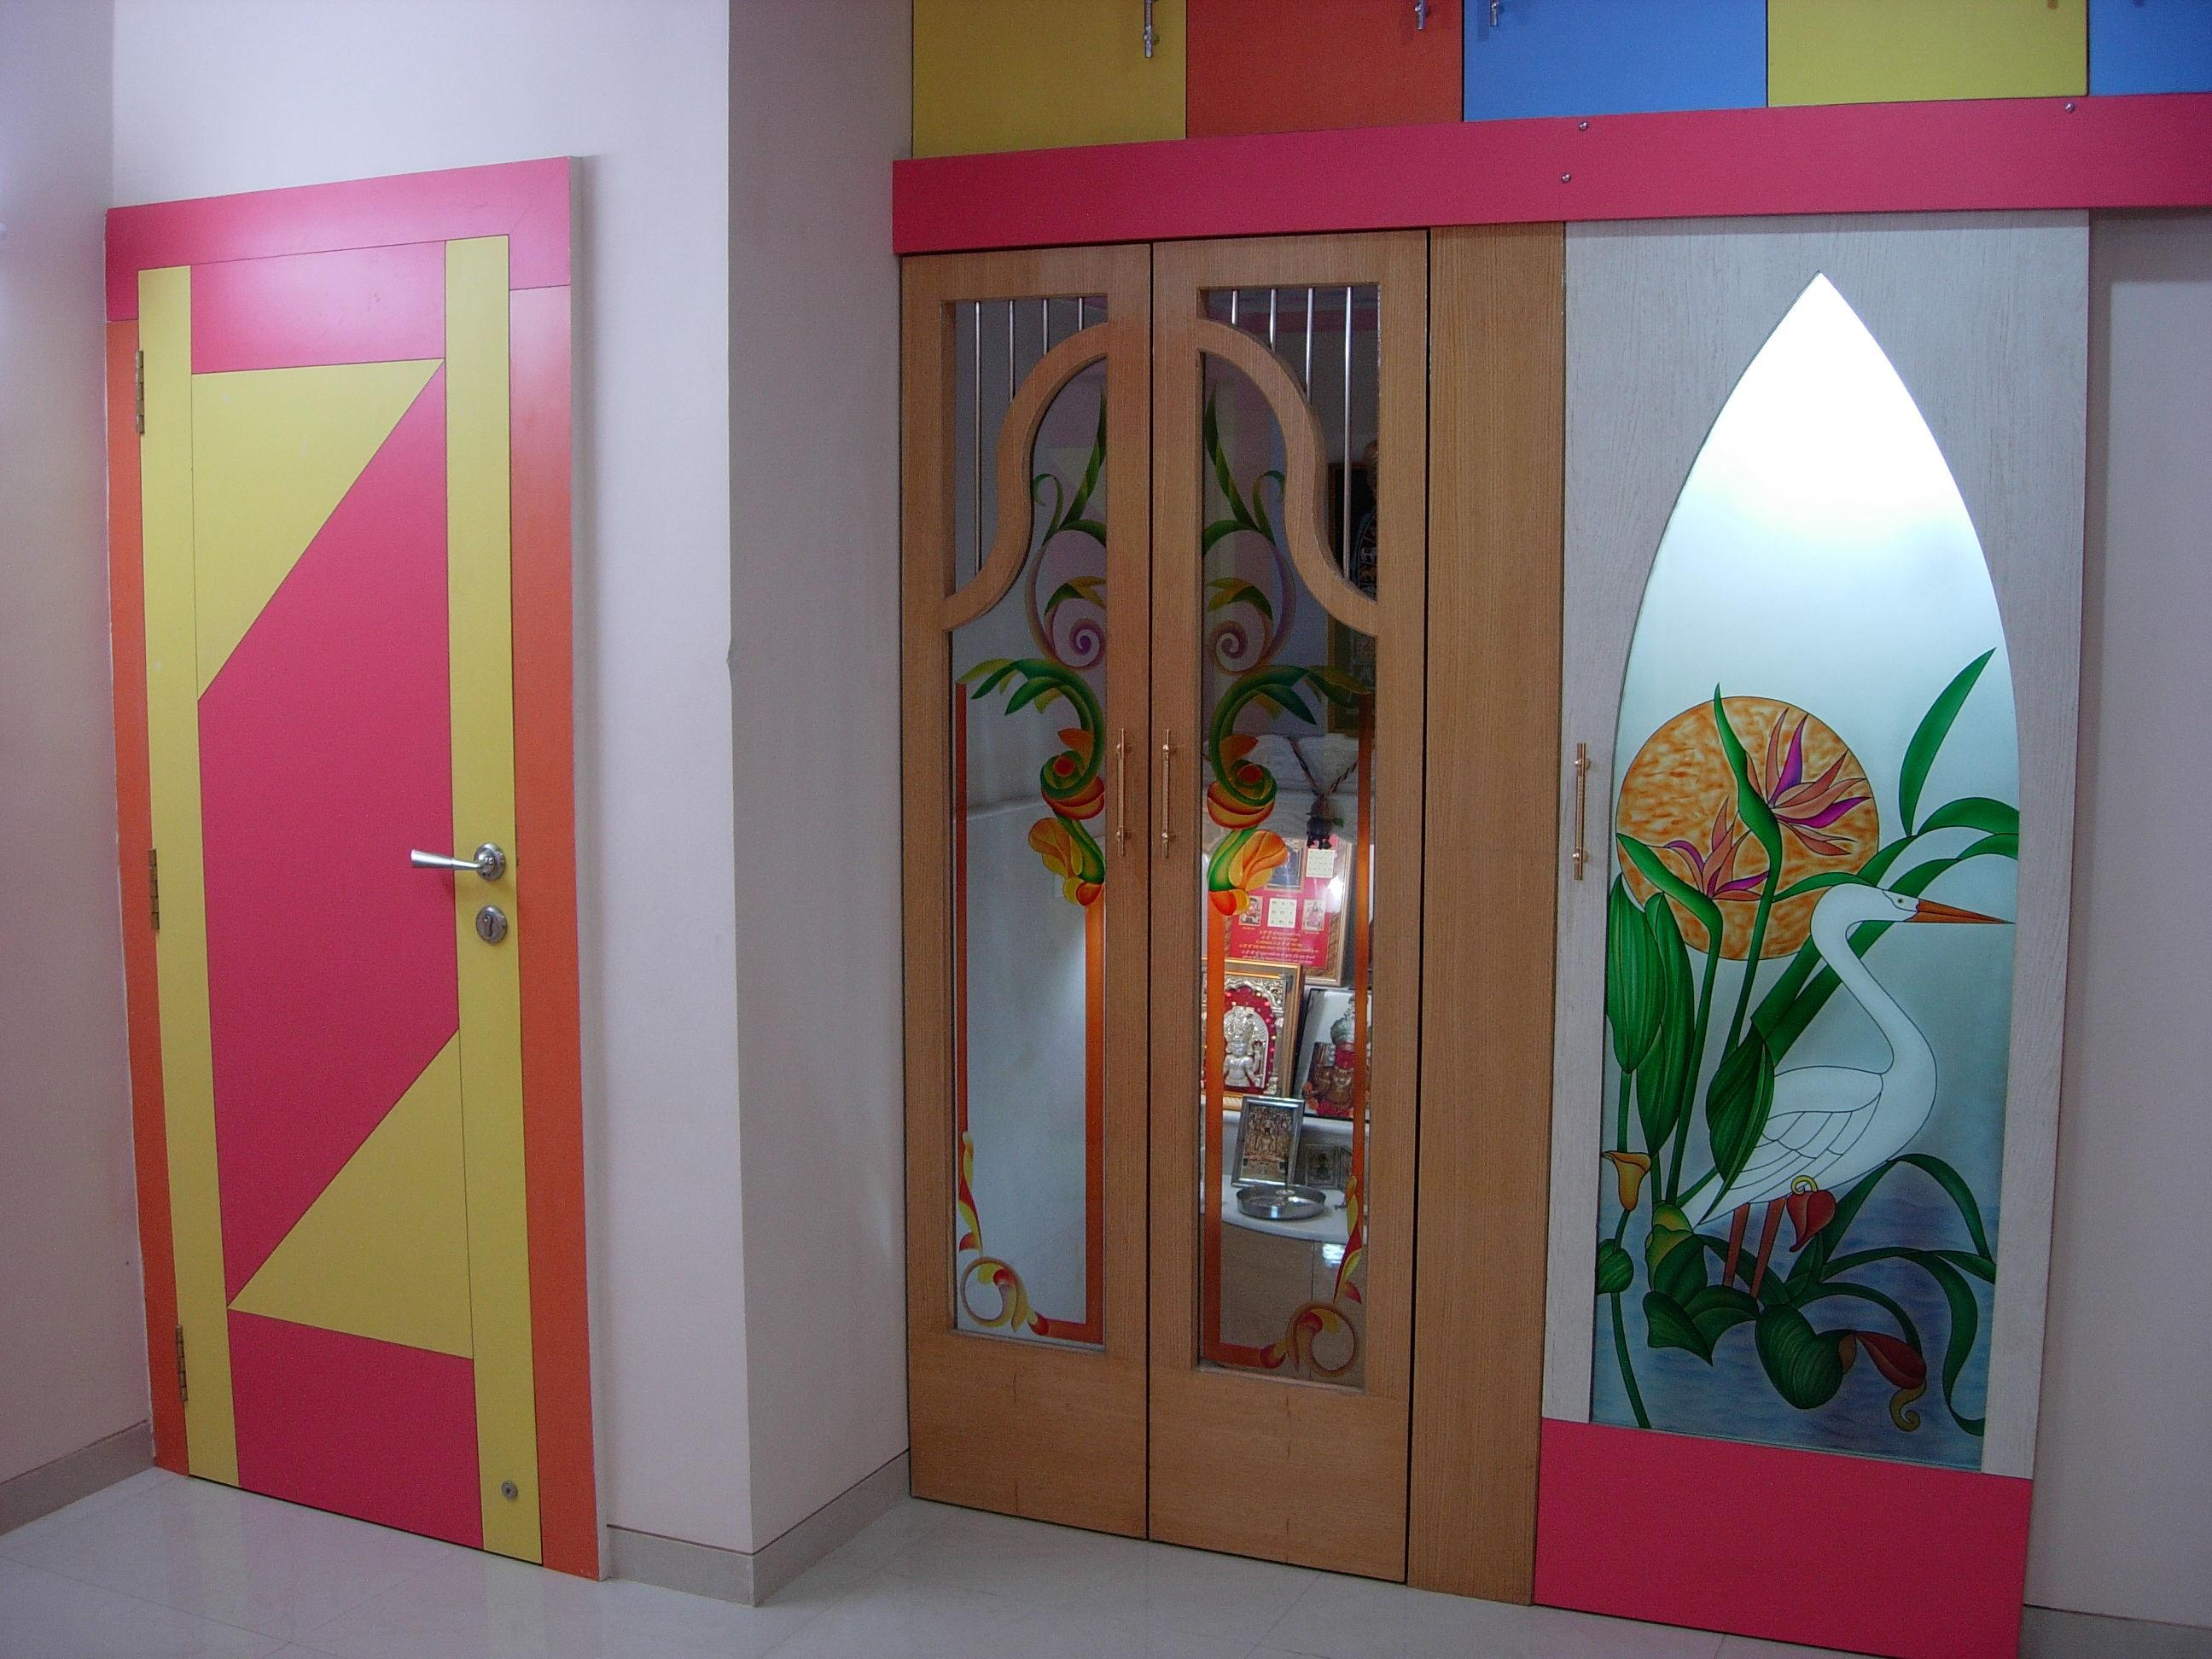 POOJA ROOM DOOR GharExpert : 1022008125905 from www.gharexpert.com size 2592 x 1944 jpeg 564kB